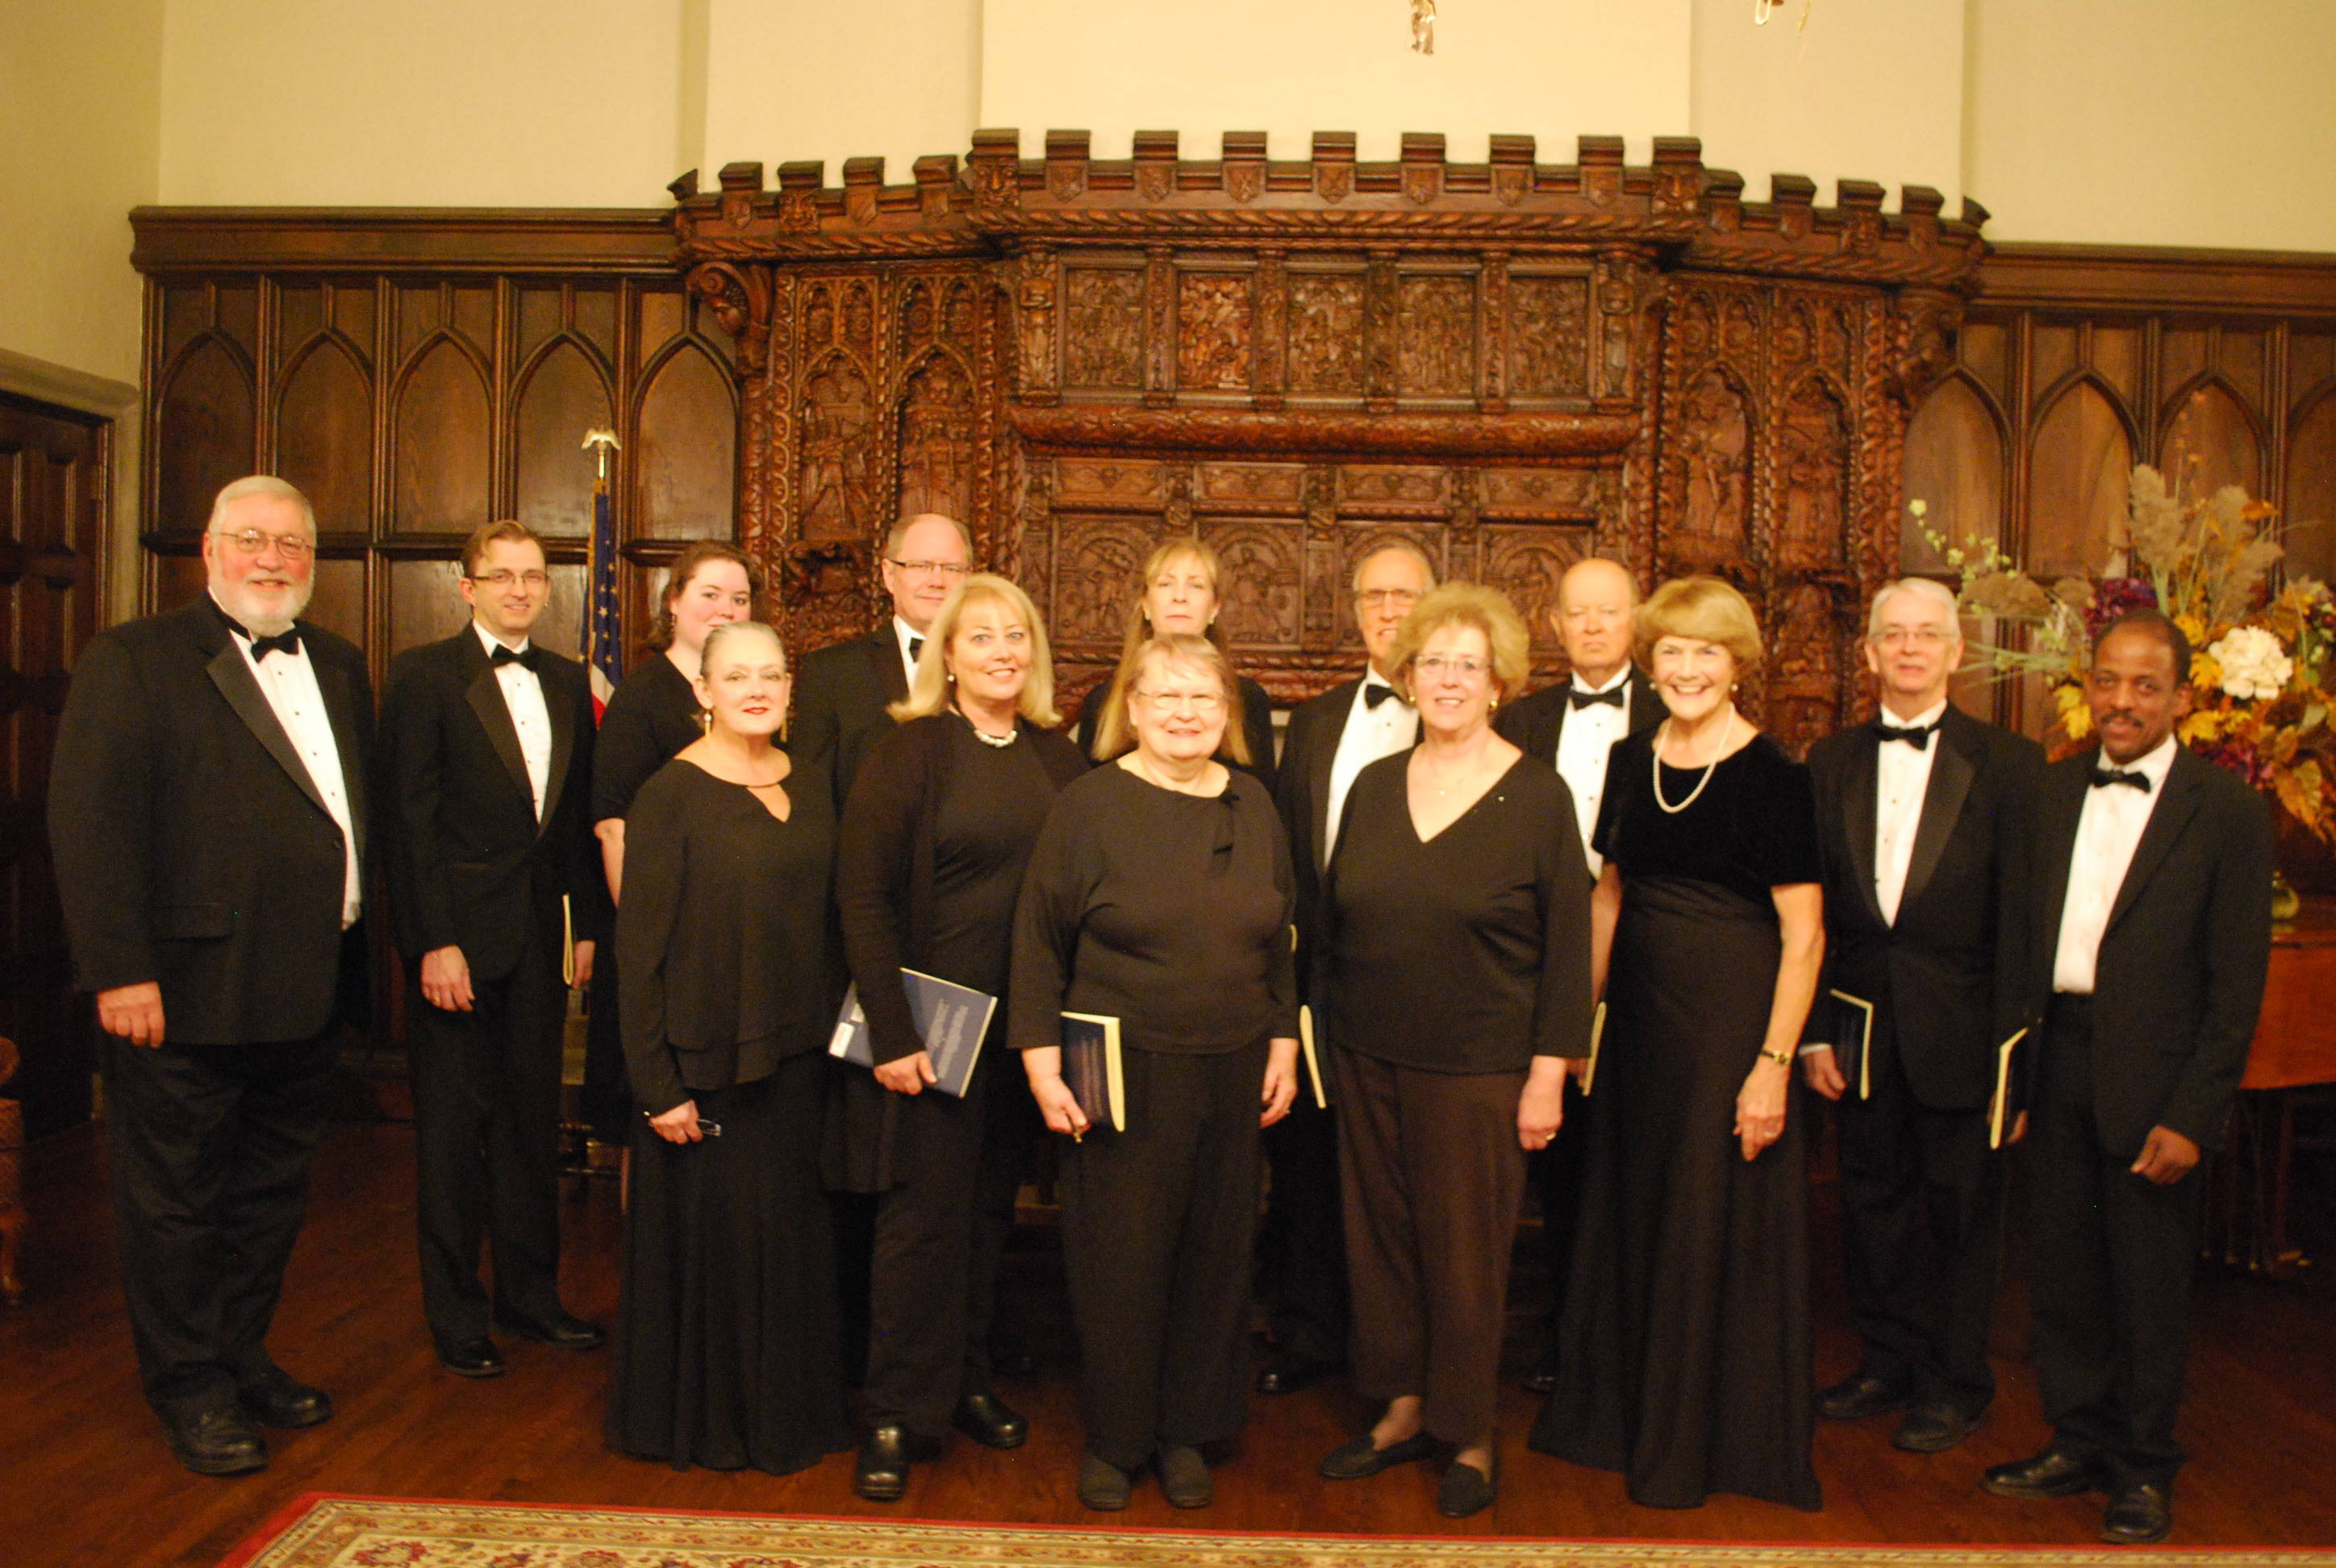 f41a0f5f61046b1253da_b6b720d7f16ce0a79387_Photo_1_-_The_Crescent_Singers_at_Crescent_Avenue_Presbyterian_Church.JPG